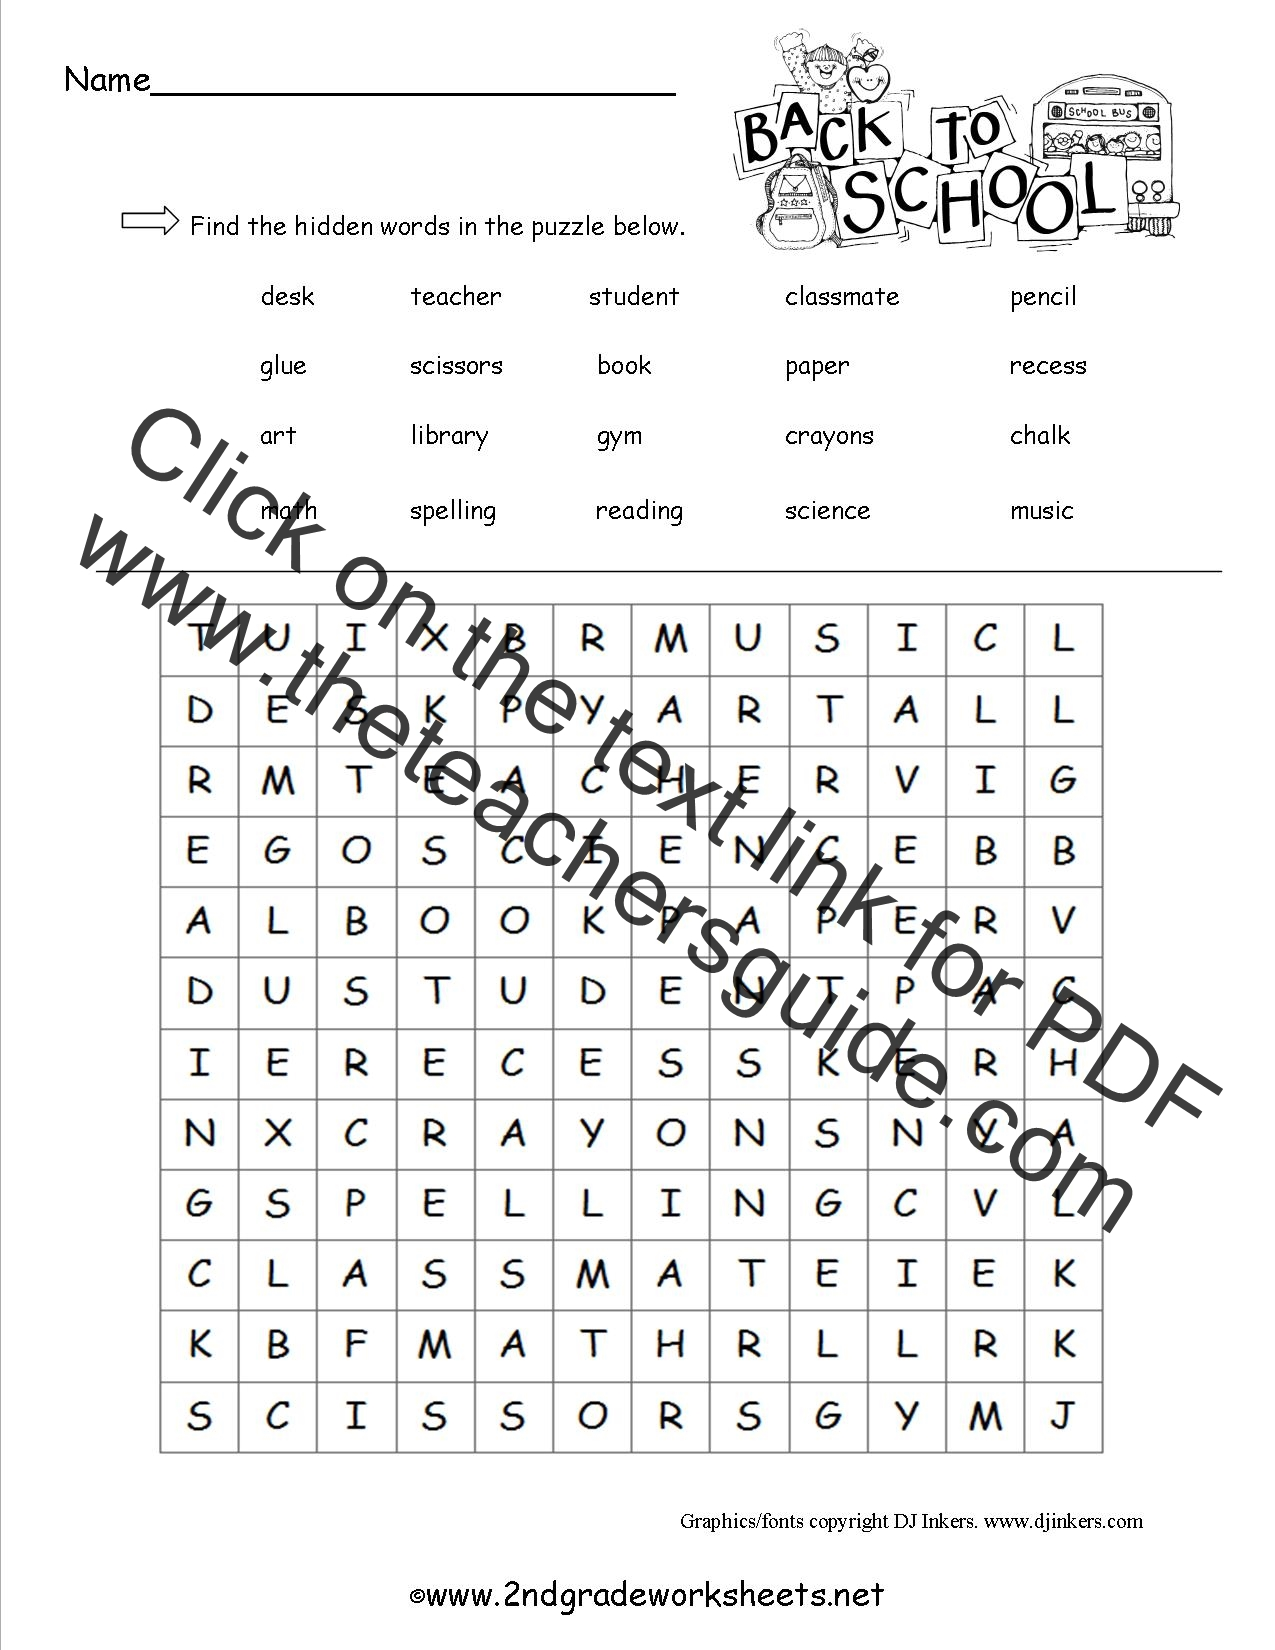 picture regarding Back to School Printable Worksheets named Totally free Back again in direction of College Worksheets and Printouts